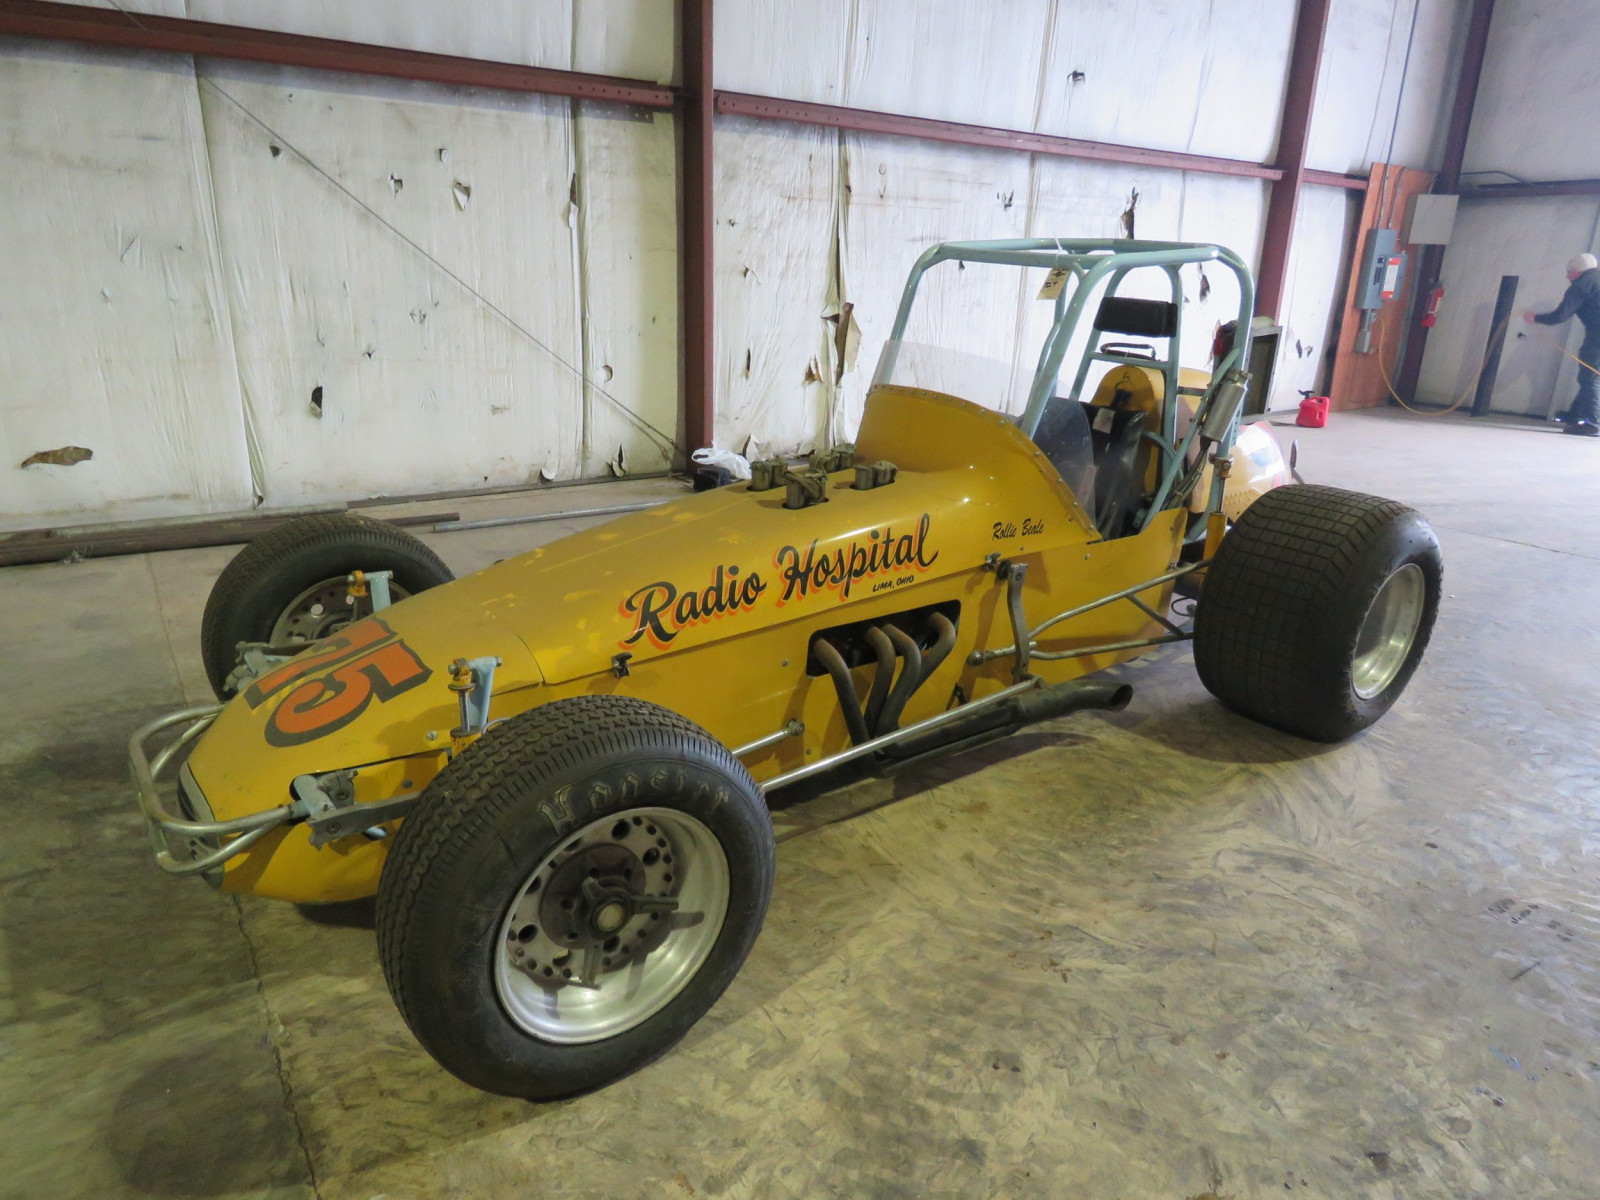 1972 fuel Injected Sprint Car - Image 1